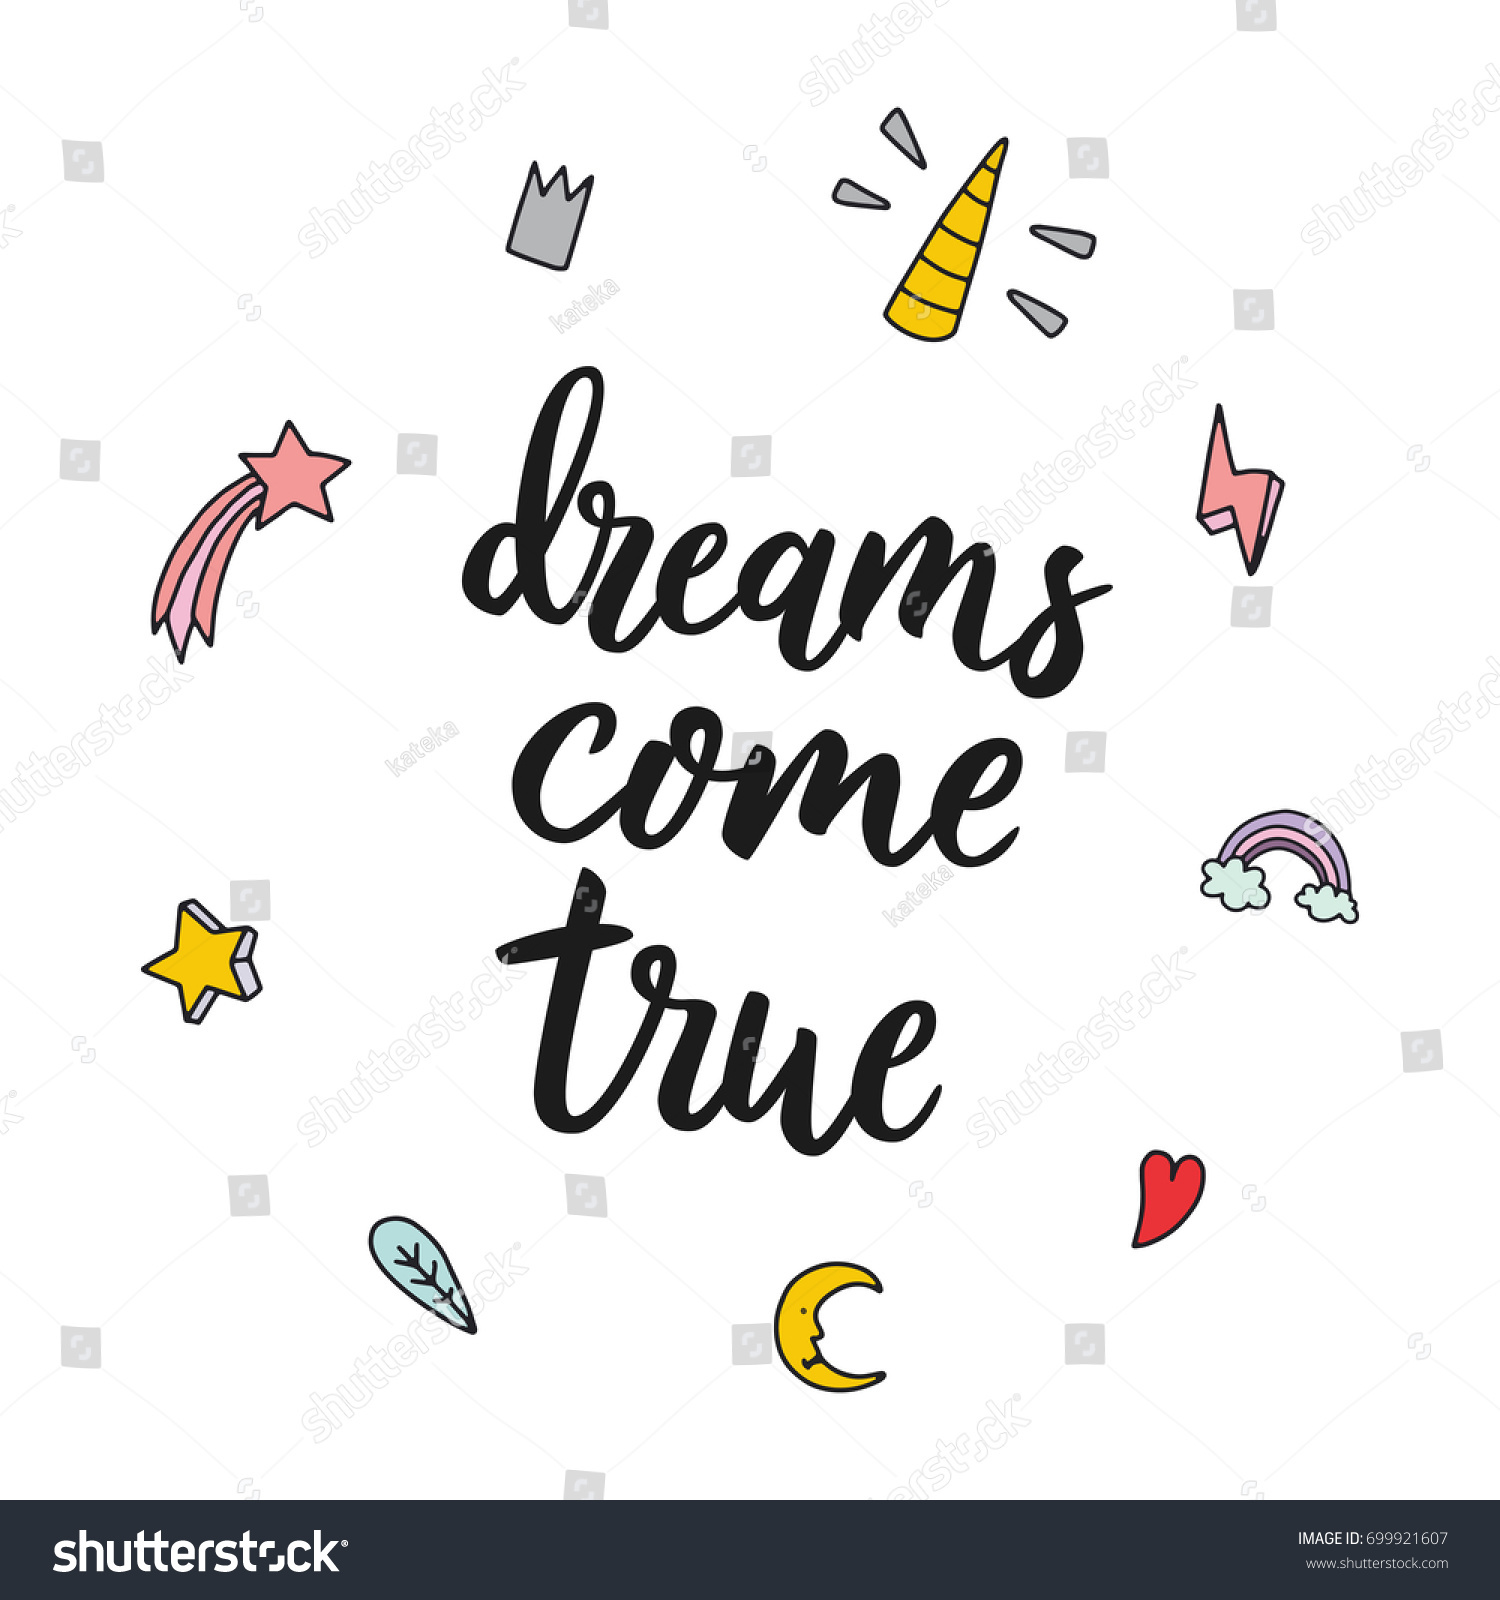 Dreams e True Motivational Inspirational Hand Stock